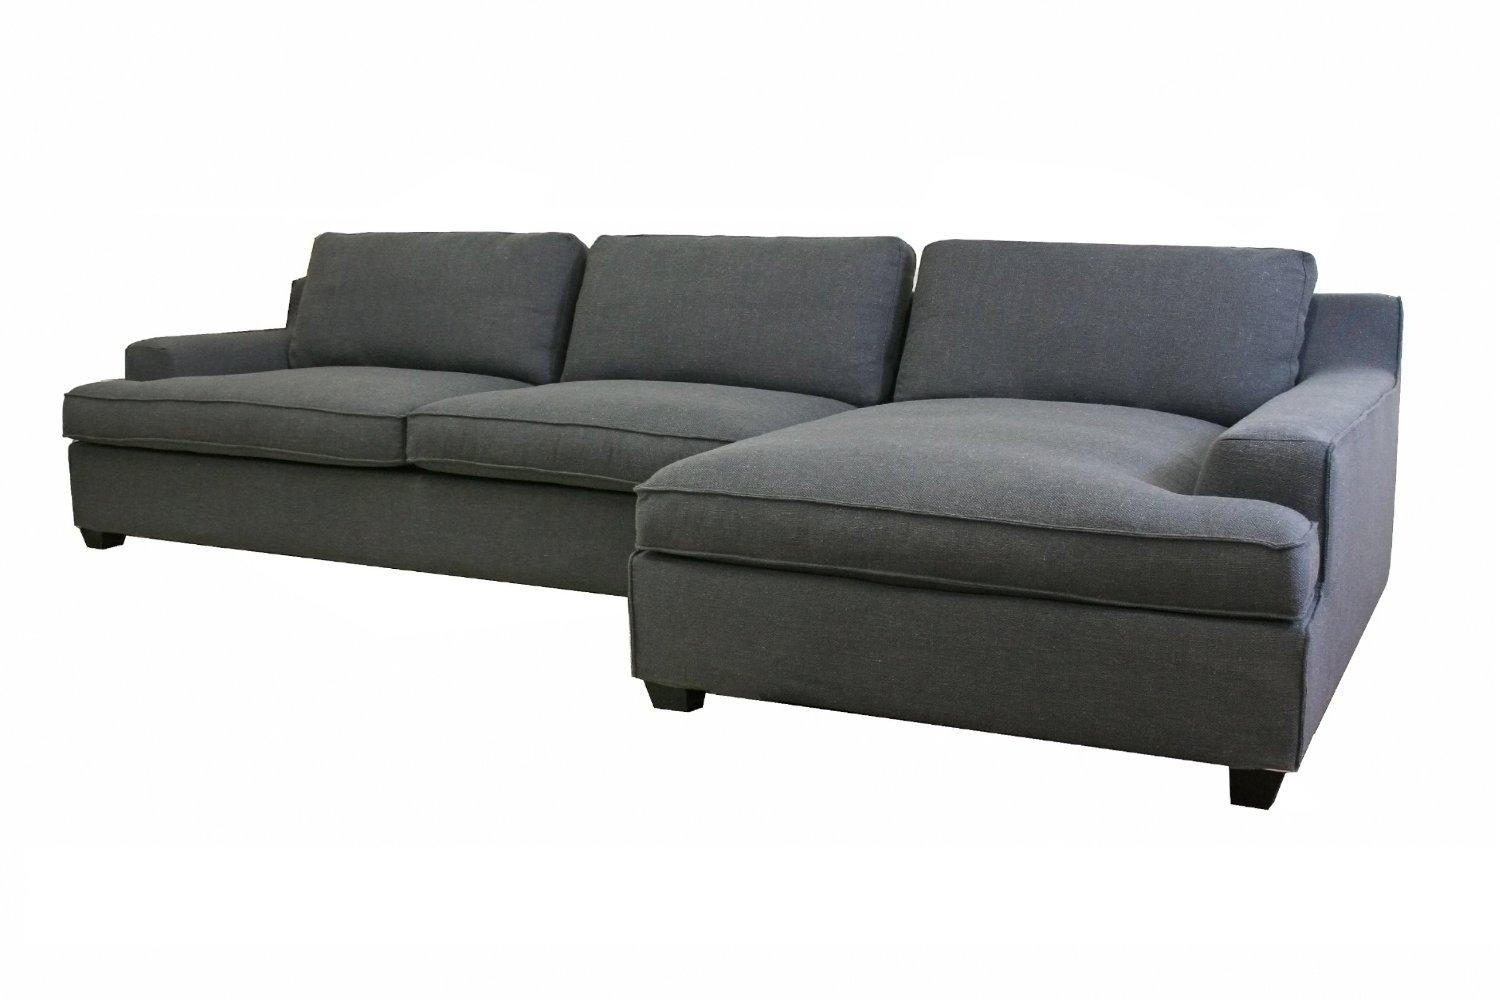 Sofas Center : Brilliant Sectional Sleeper Sofa With Chaise Cool For Sectional Sleeper Sofas With Chaise (View 9 of 20)